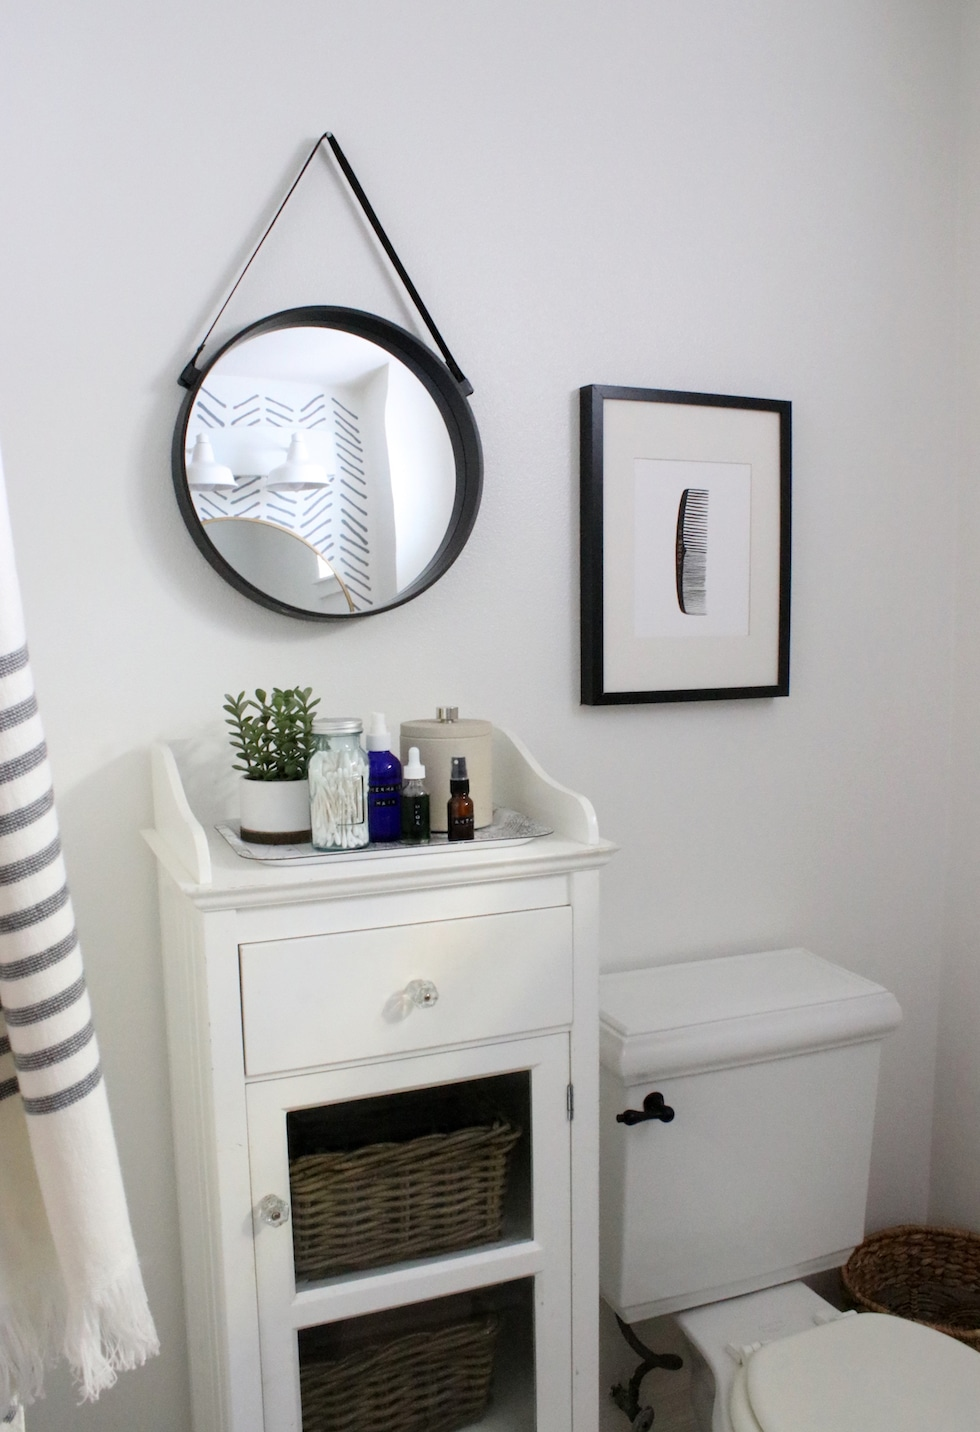 DIY Bathroom Makeover in a Month: Before & After